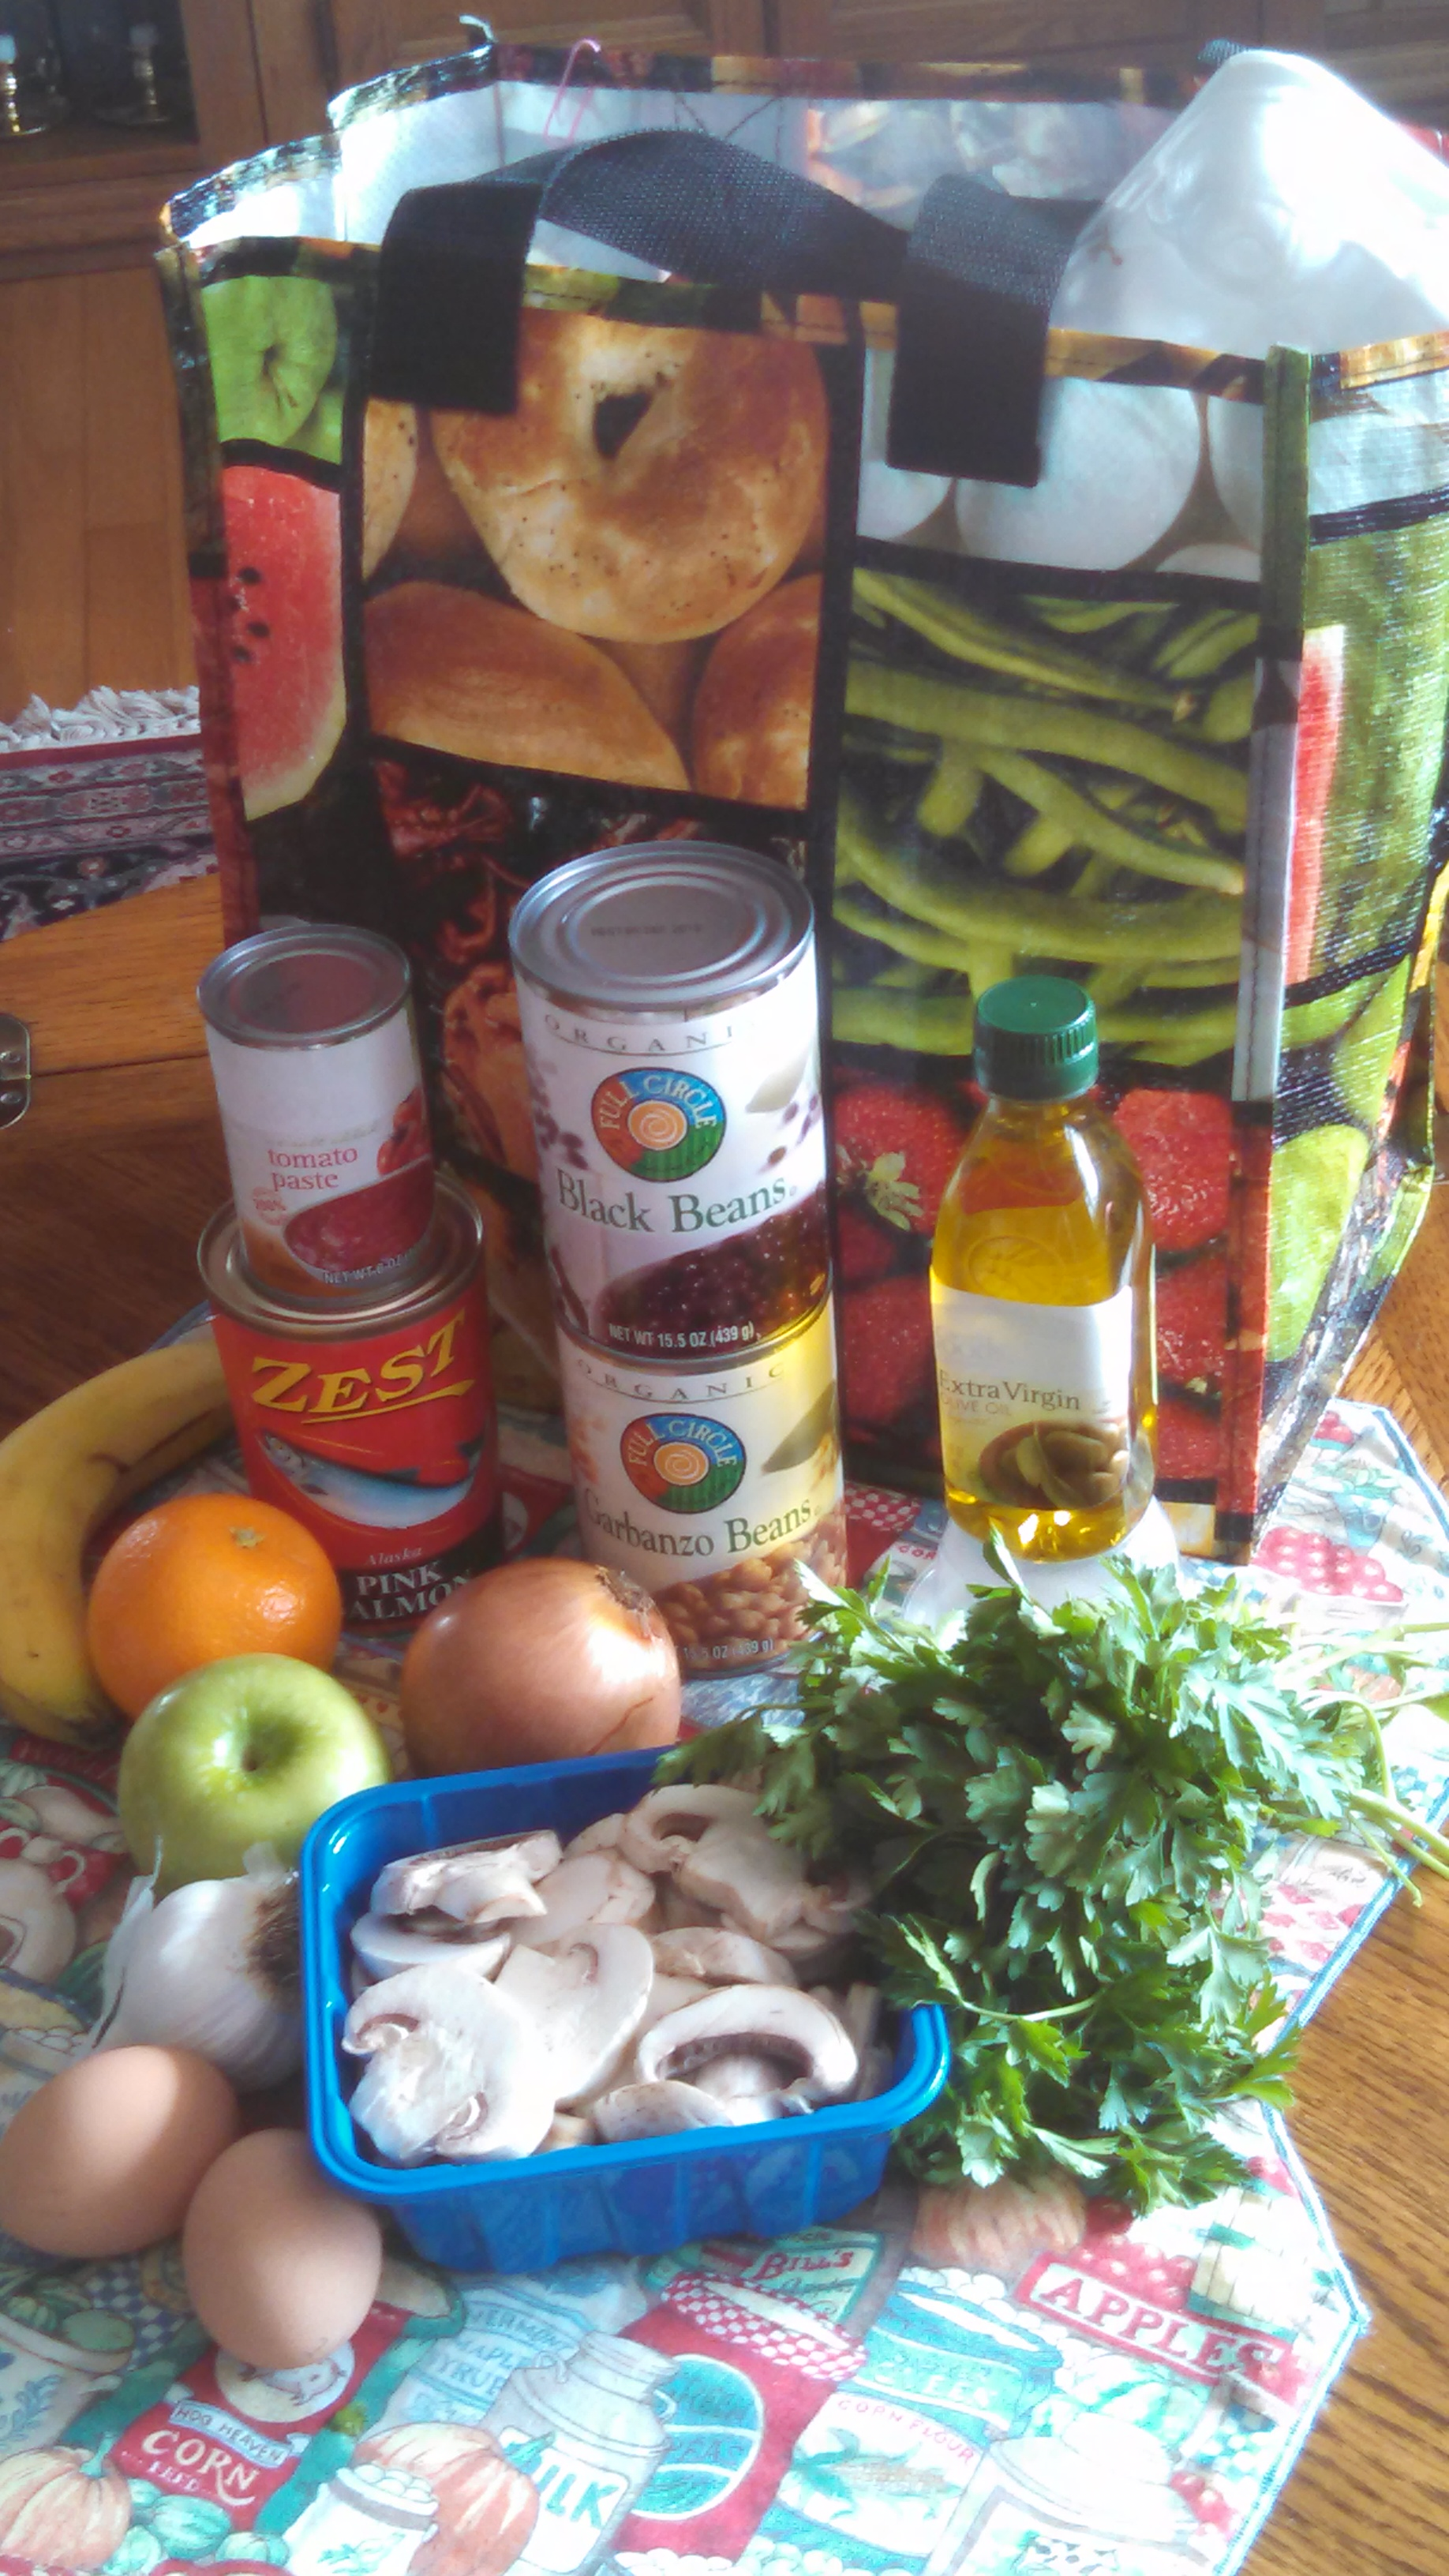 Best Deals At The Grocery Store A Market Basket Of